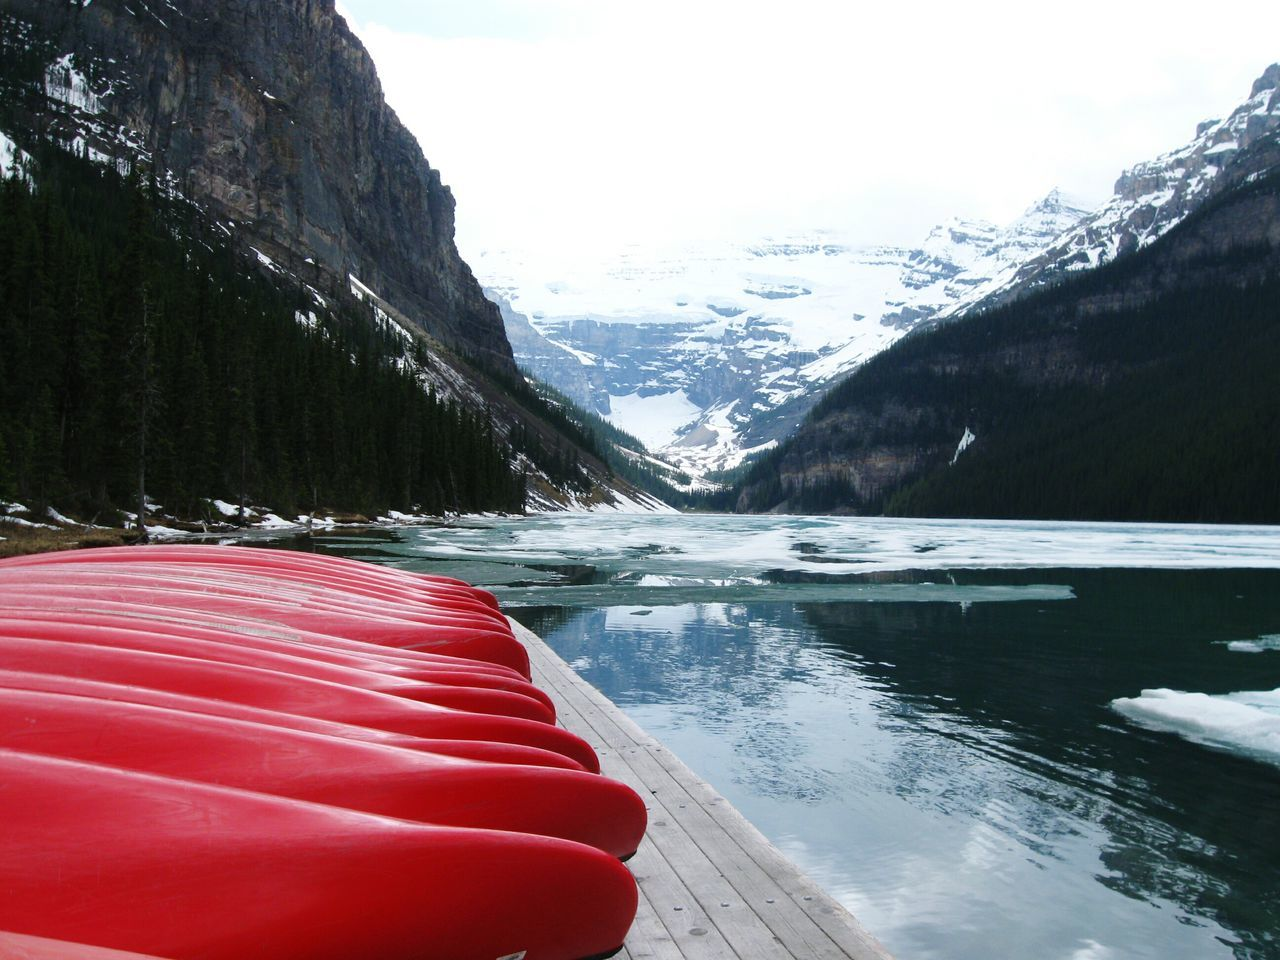 Miles Away Lakelouise Rocky Mountains Mountain Lake Outdoors No People Landscape Nature Enjoying Life Adventuretime Rocky Mountain Travel Destinations Beauty In Nature Nice View Happy Time Nature Canoes Snow Pinetrees